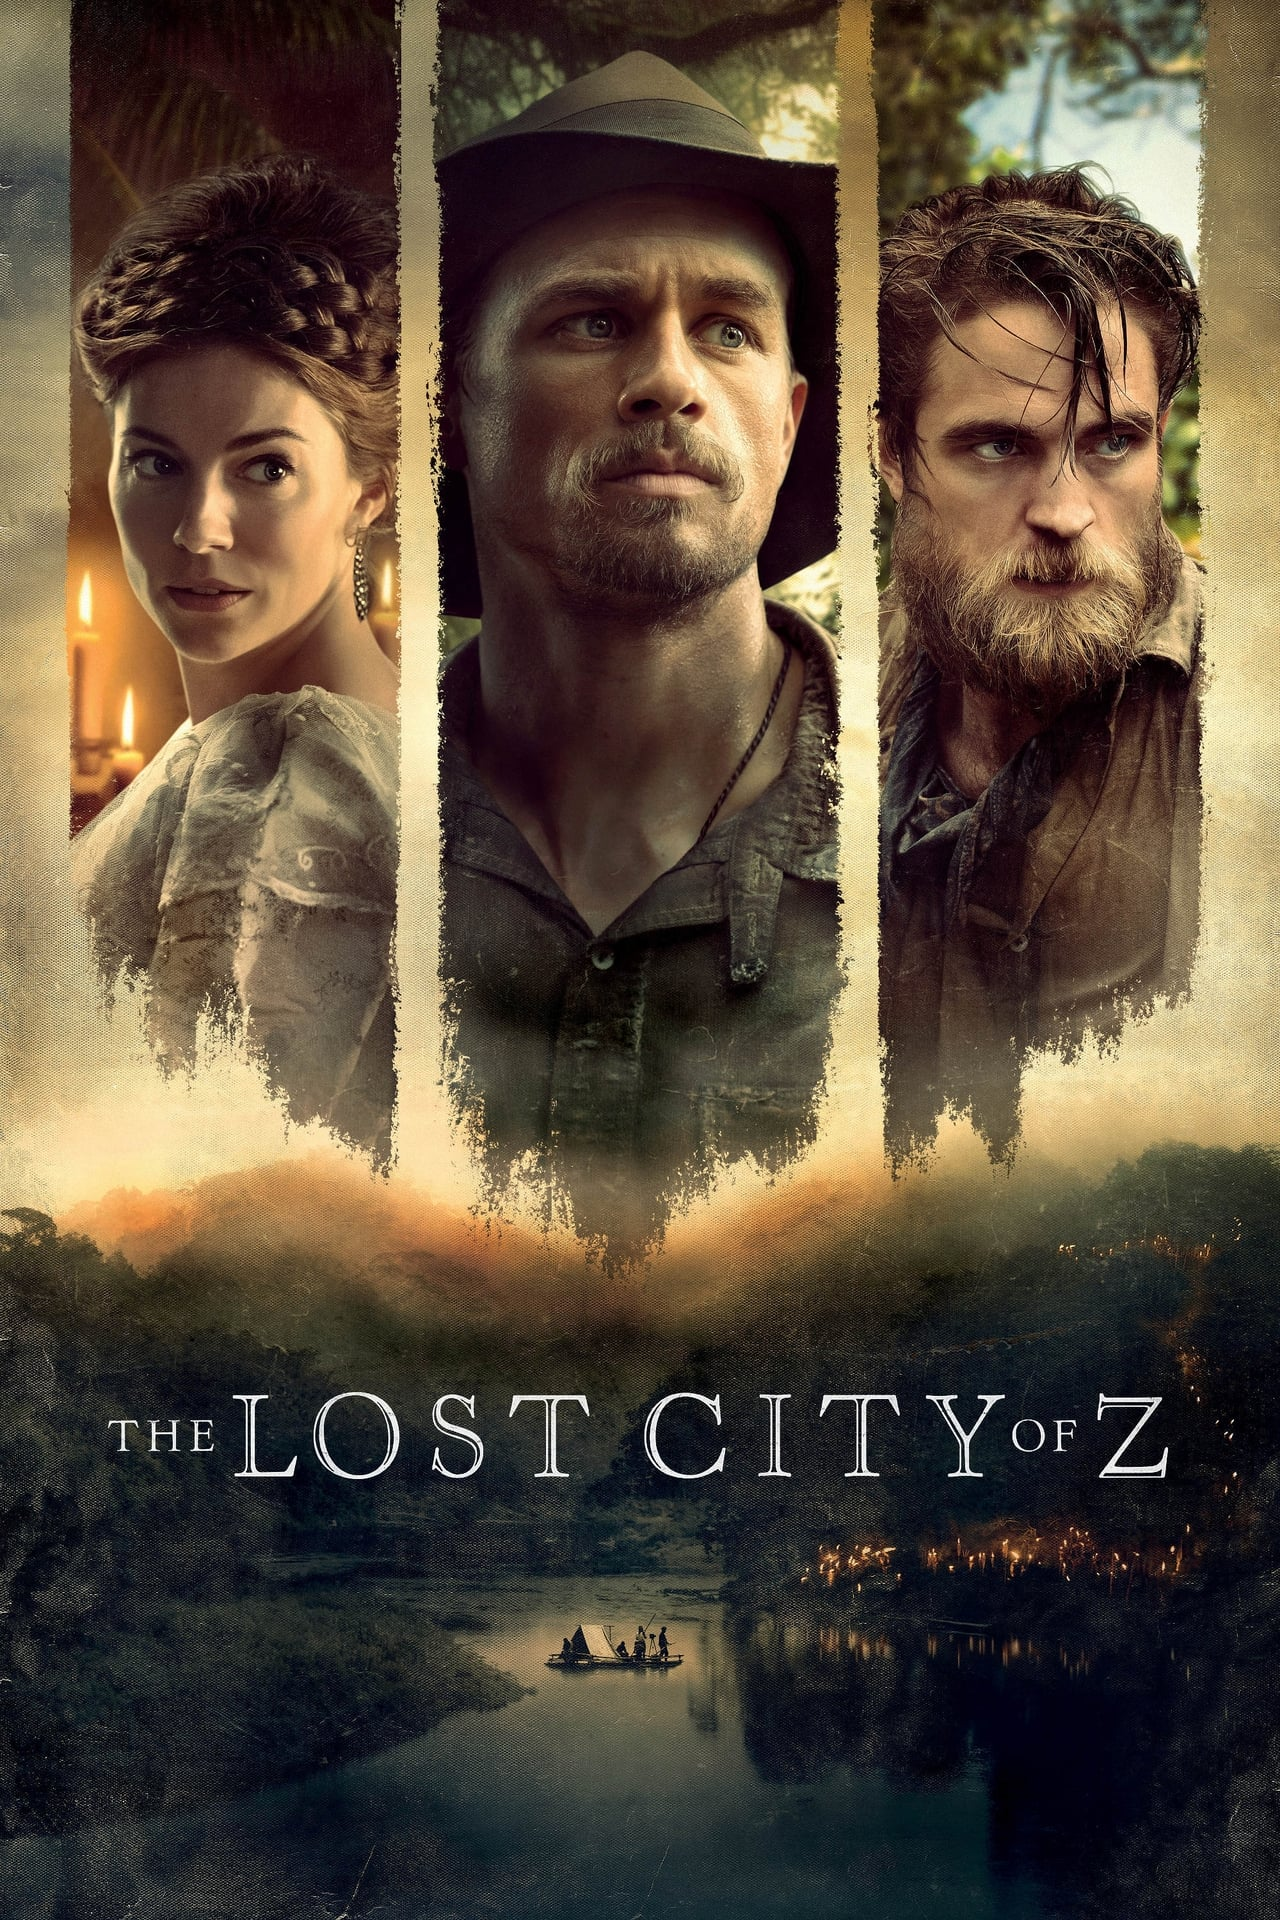 The Lost City of Z  2017  Free Latest Films Full Movie Online Watch